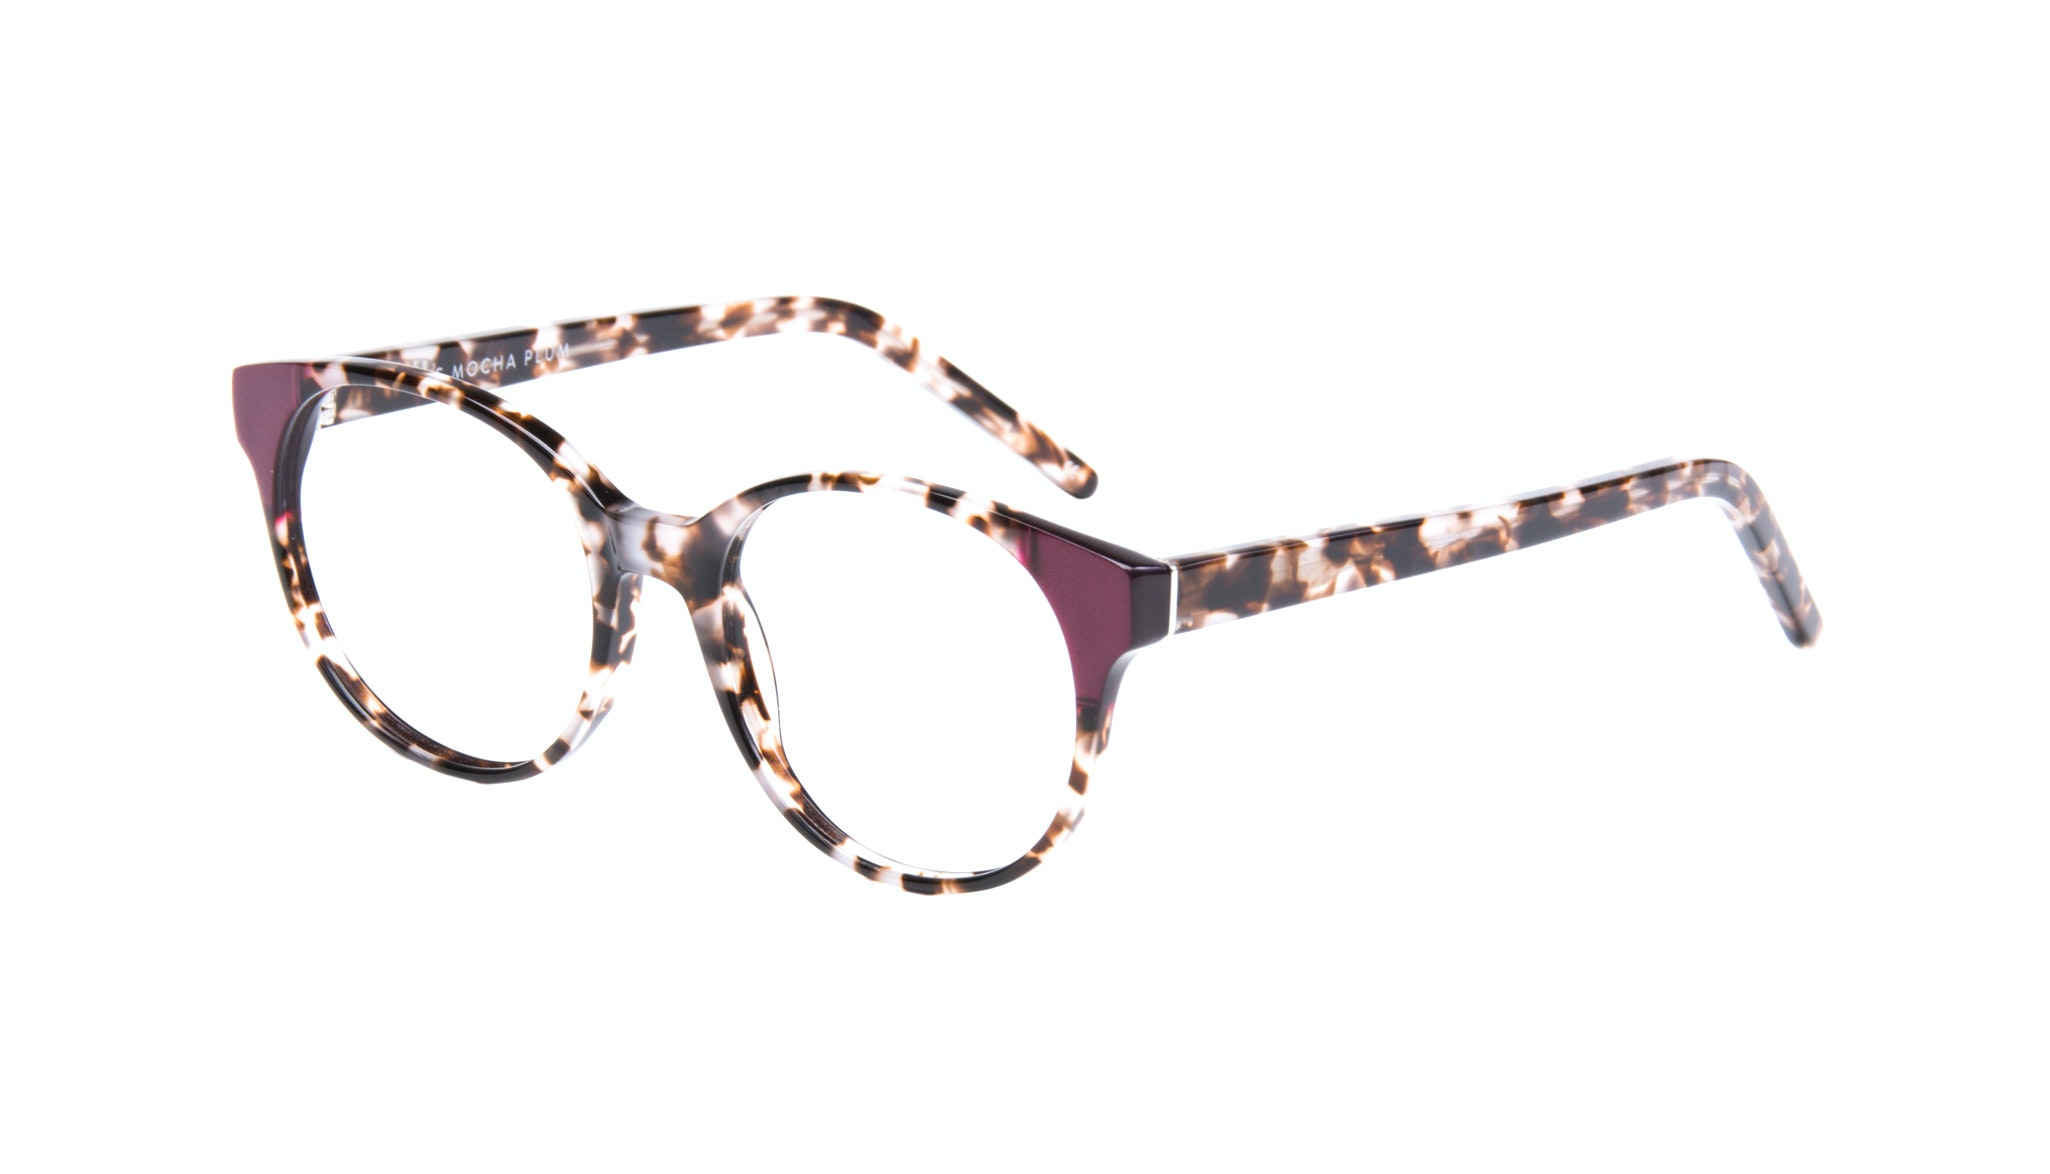 Affordable Fashion Glasses Round Eyeglasses Women Bis Mocha Plum Tilt